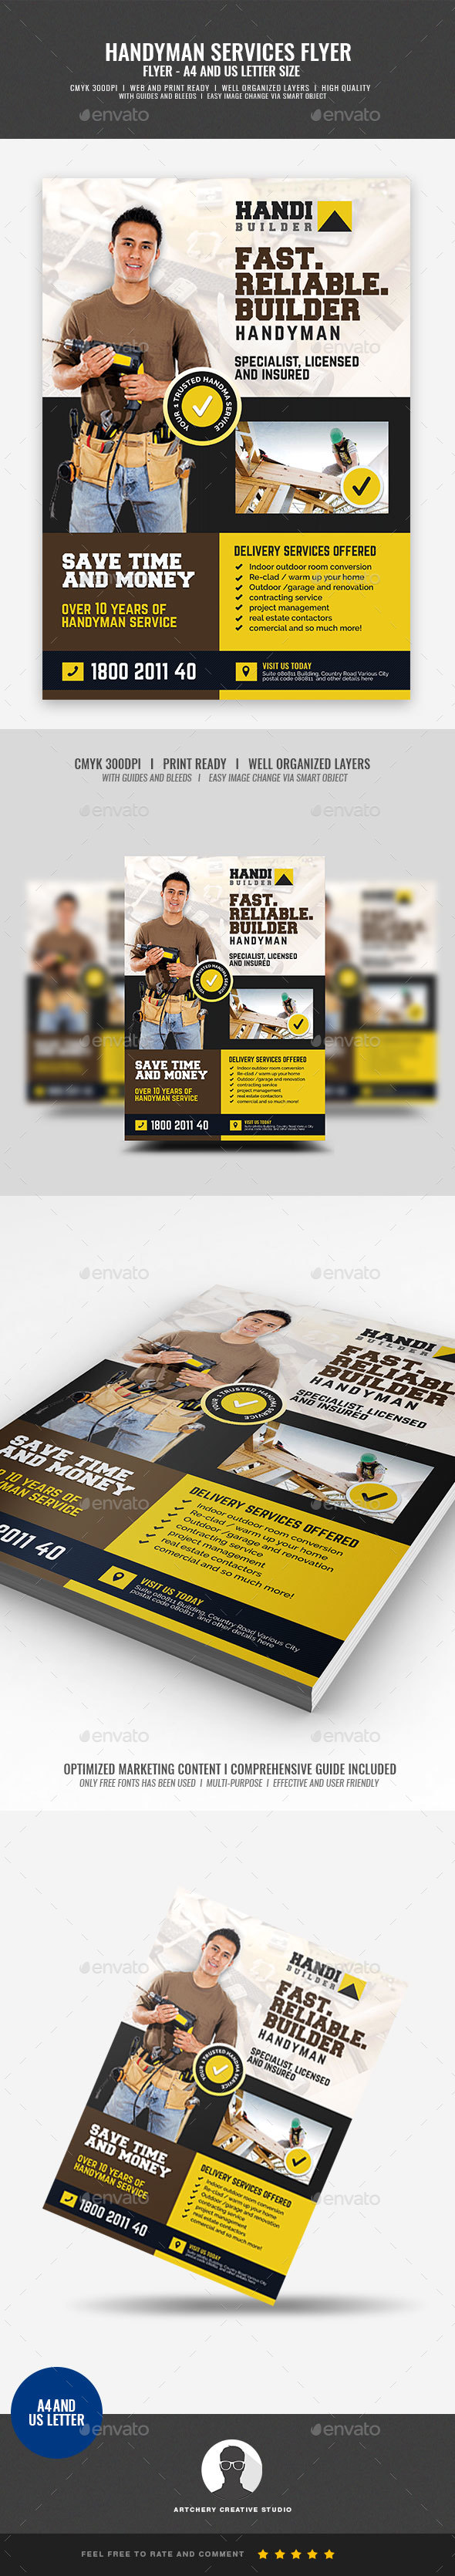 Construction and Building Contractor Promotional Flyer - Corporate Flyers